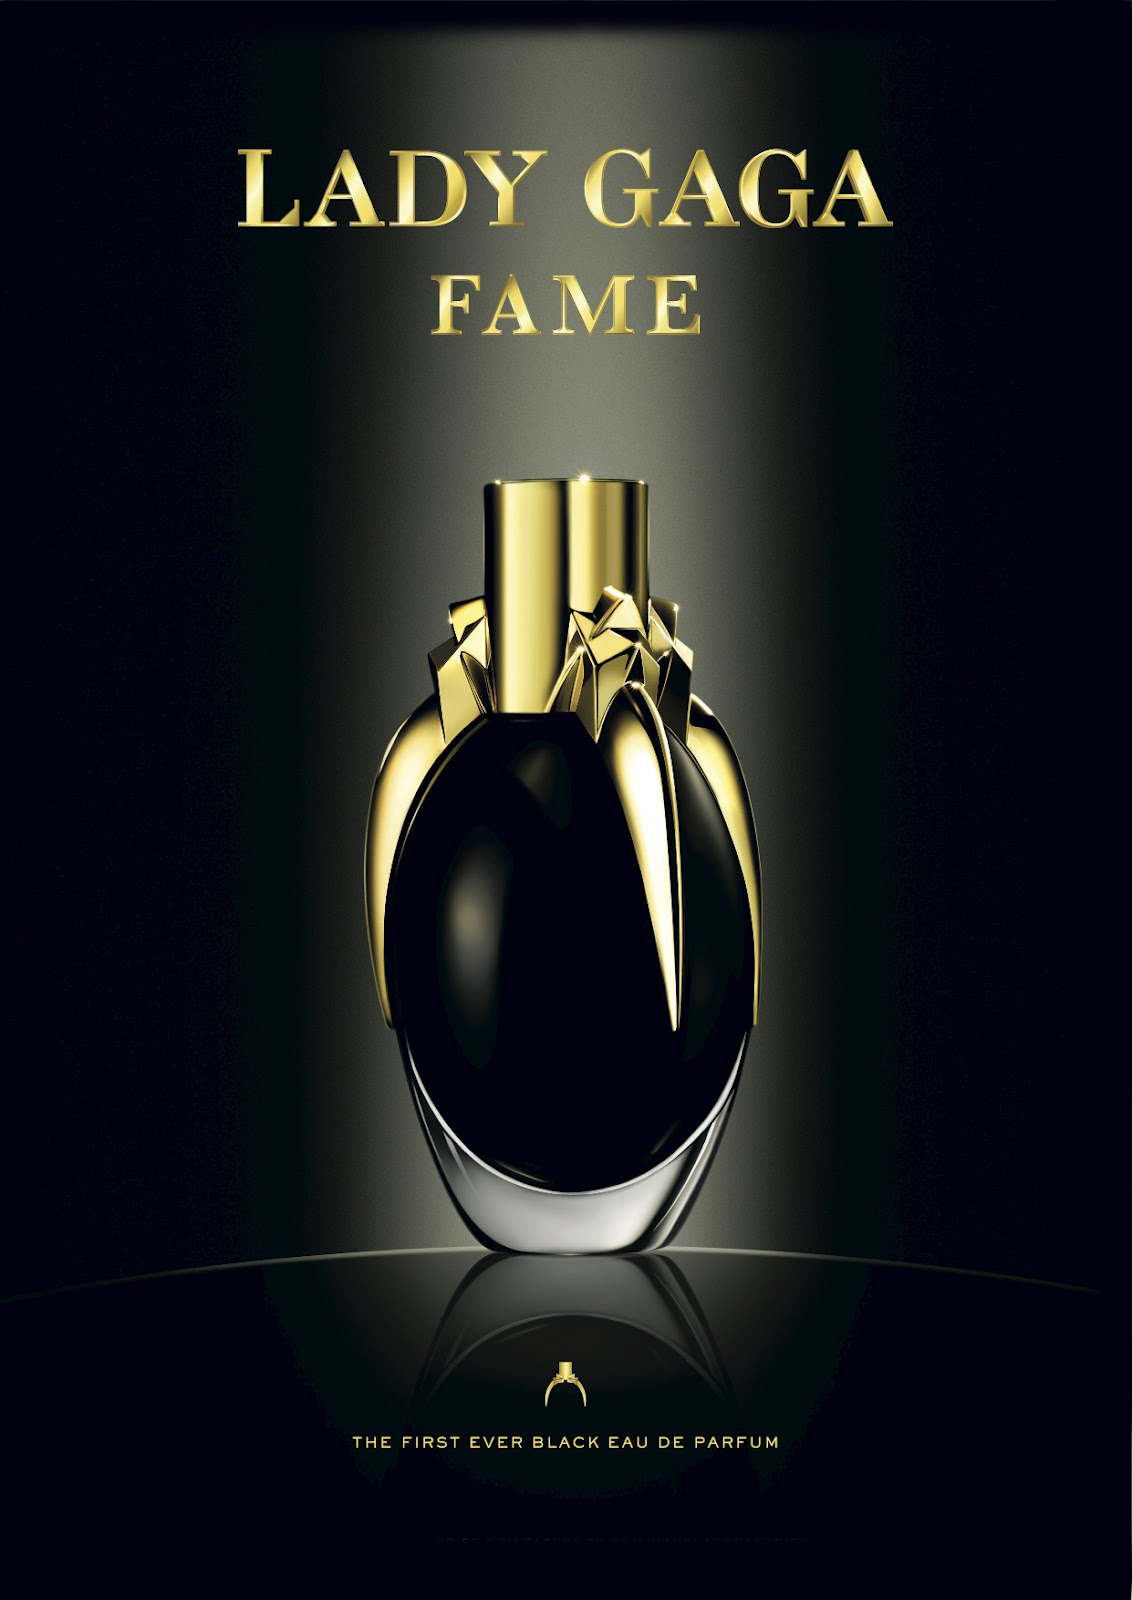 New Images of Fame, Lady Gaga Perfume